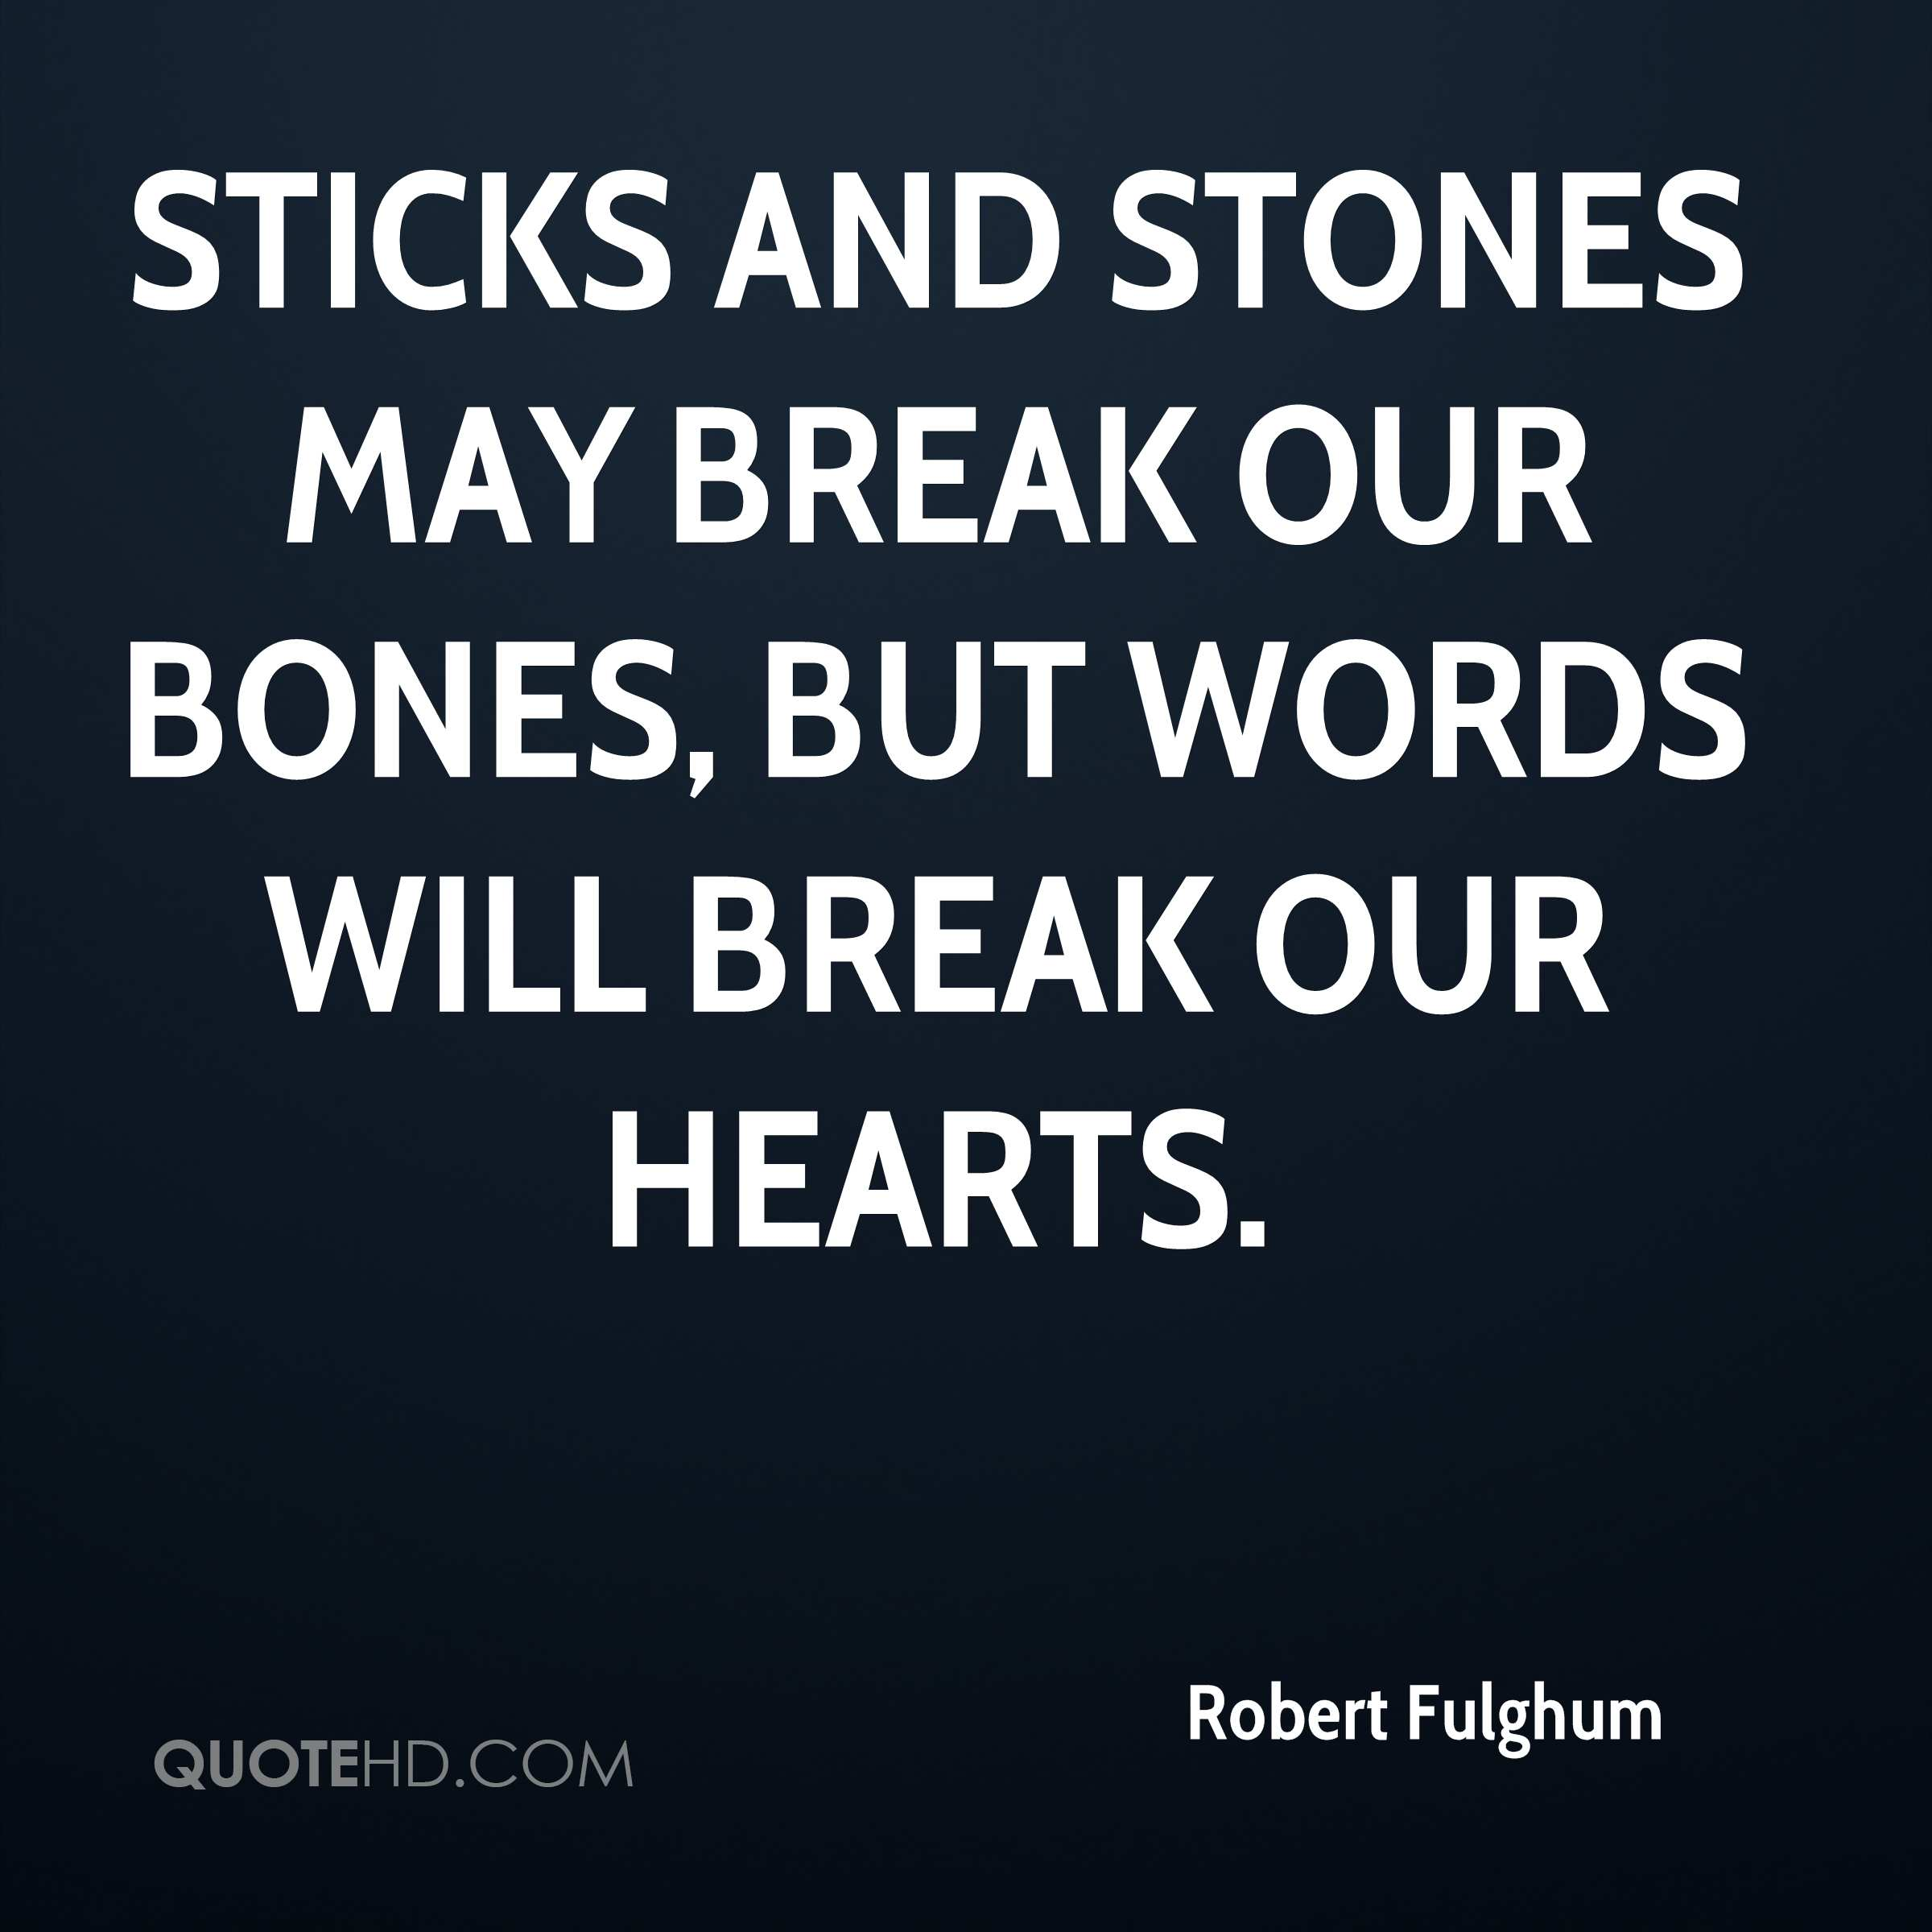 sticks and stones how words will These sticks and stones may break me, but the words you said just tore my heart in two remember when we didn't have a dime between us.